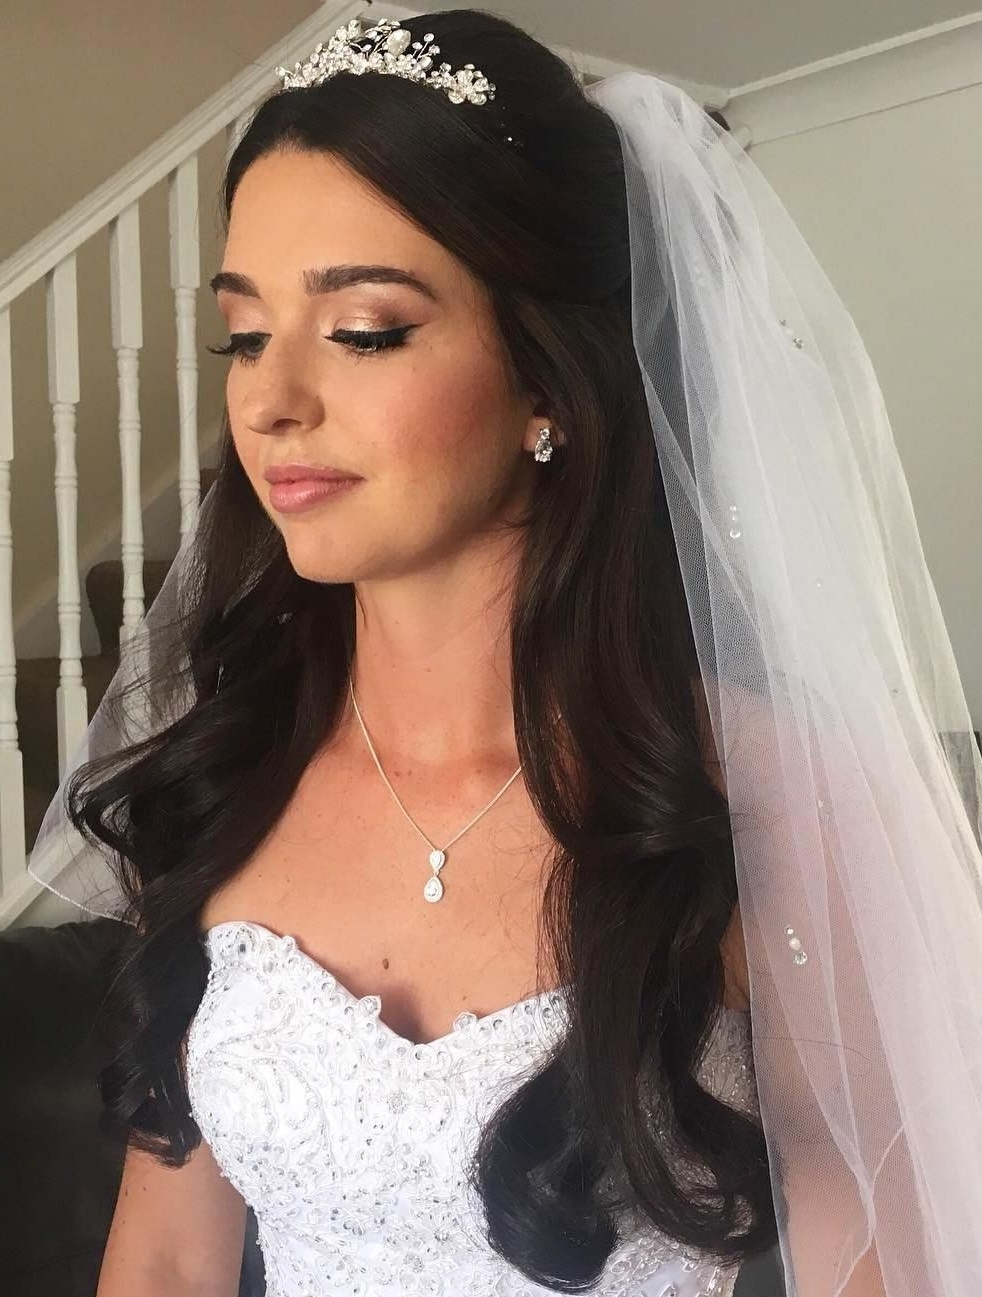 Half Up Half Down Wedding Hairstyles – 50 Stylish Ideas For Brides Inside Fashionable Half Up Half Down With Veil Wedding Hairstyles (View 5 of 15)